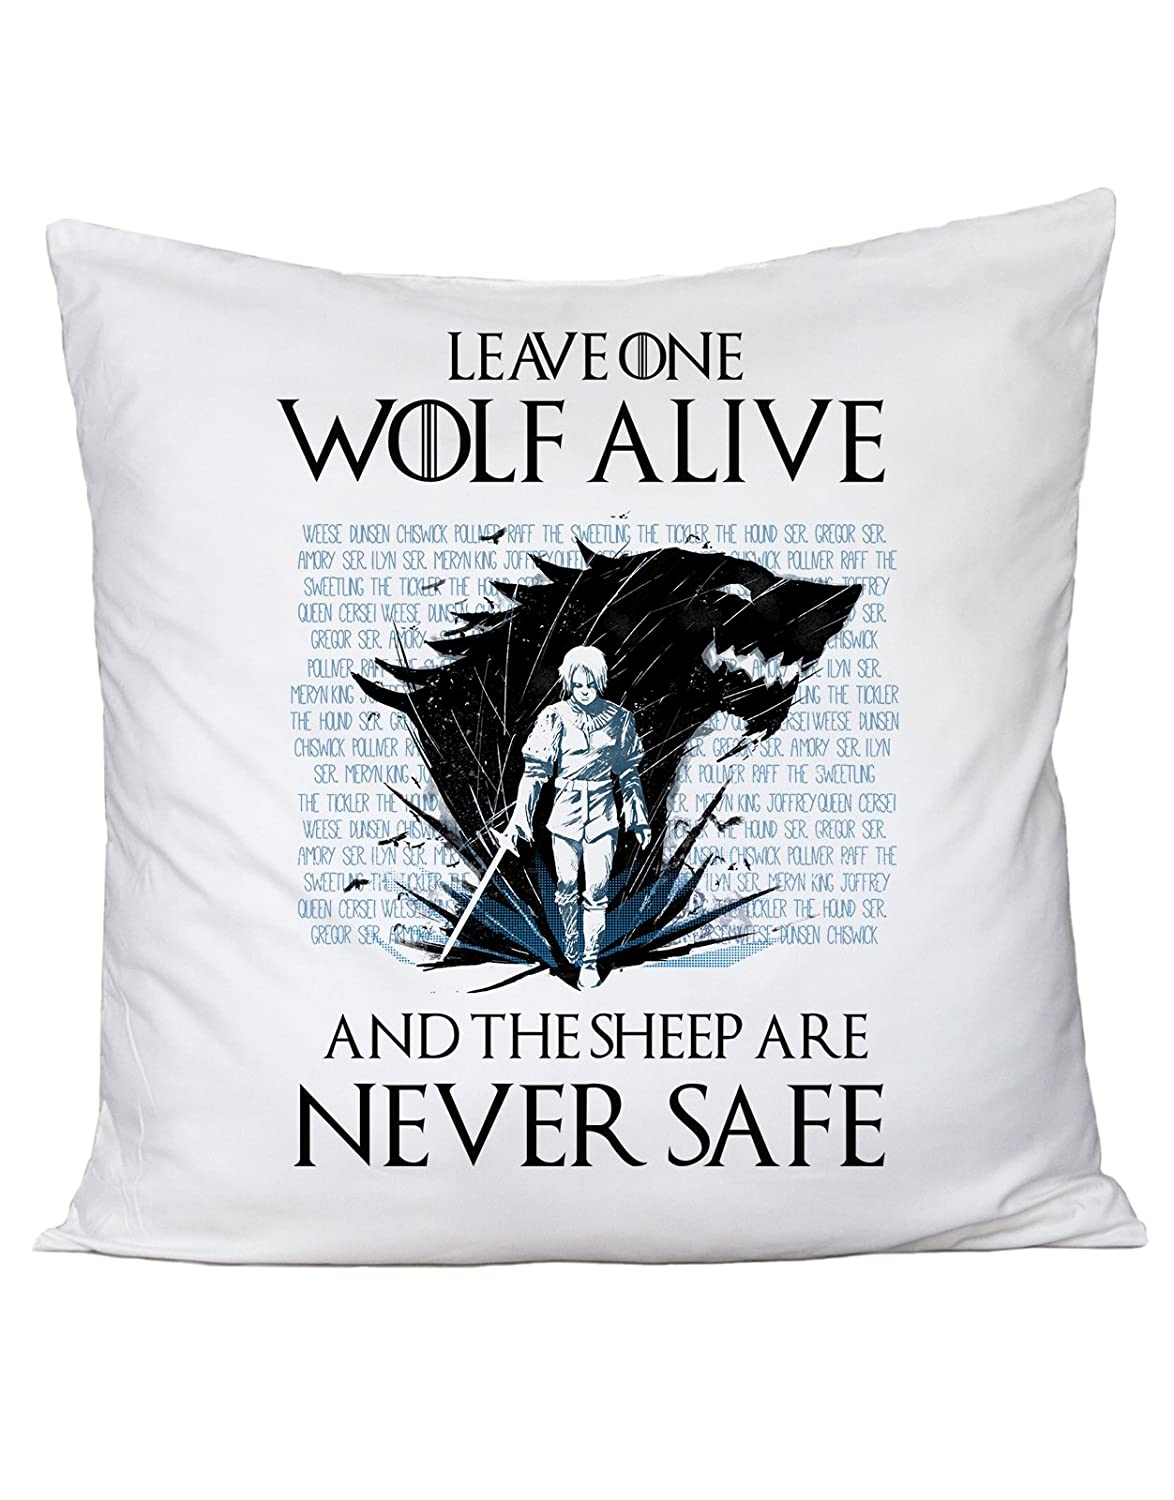 Cuscino Leave one wolf alive and the sheep are never safe - Arya Stark - Game of Thrones - Il Trono di spade - serie tv fashwork fshCS484BS